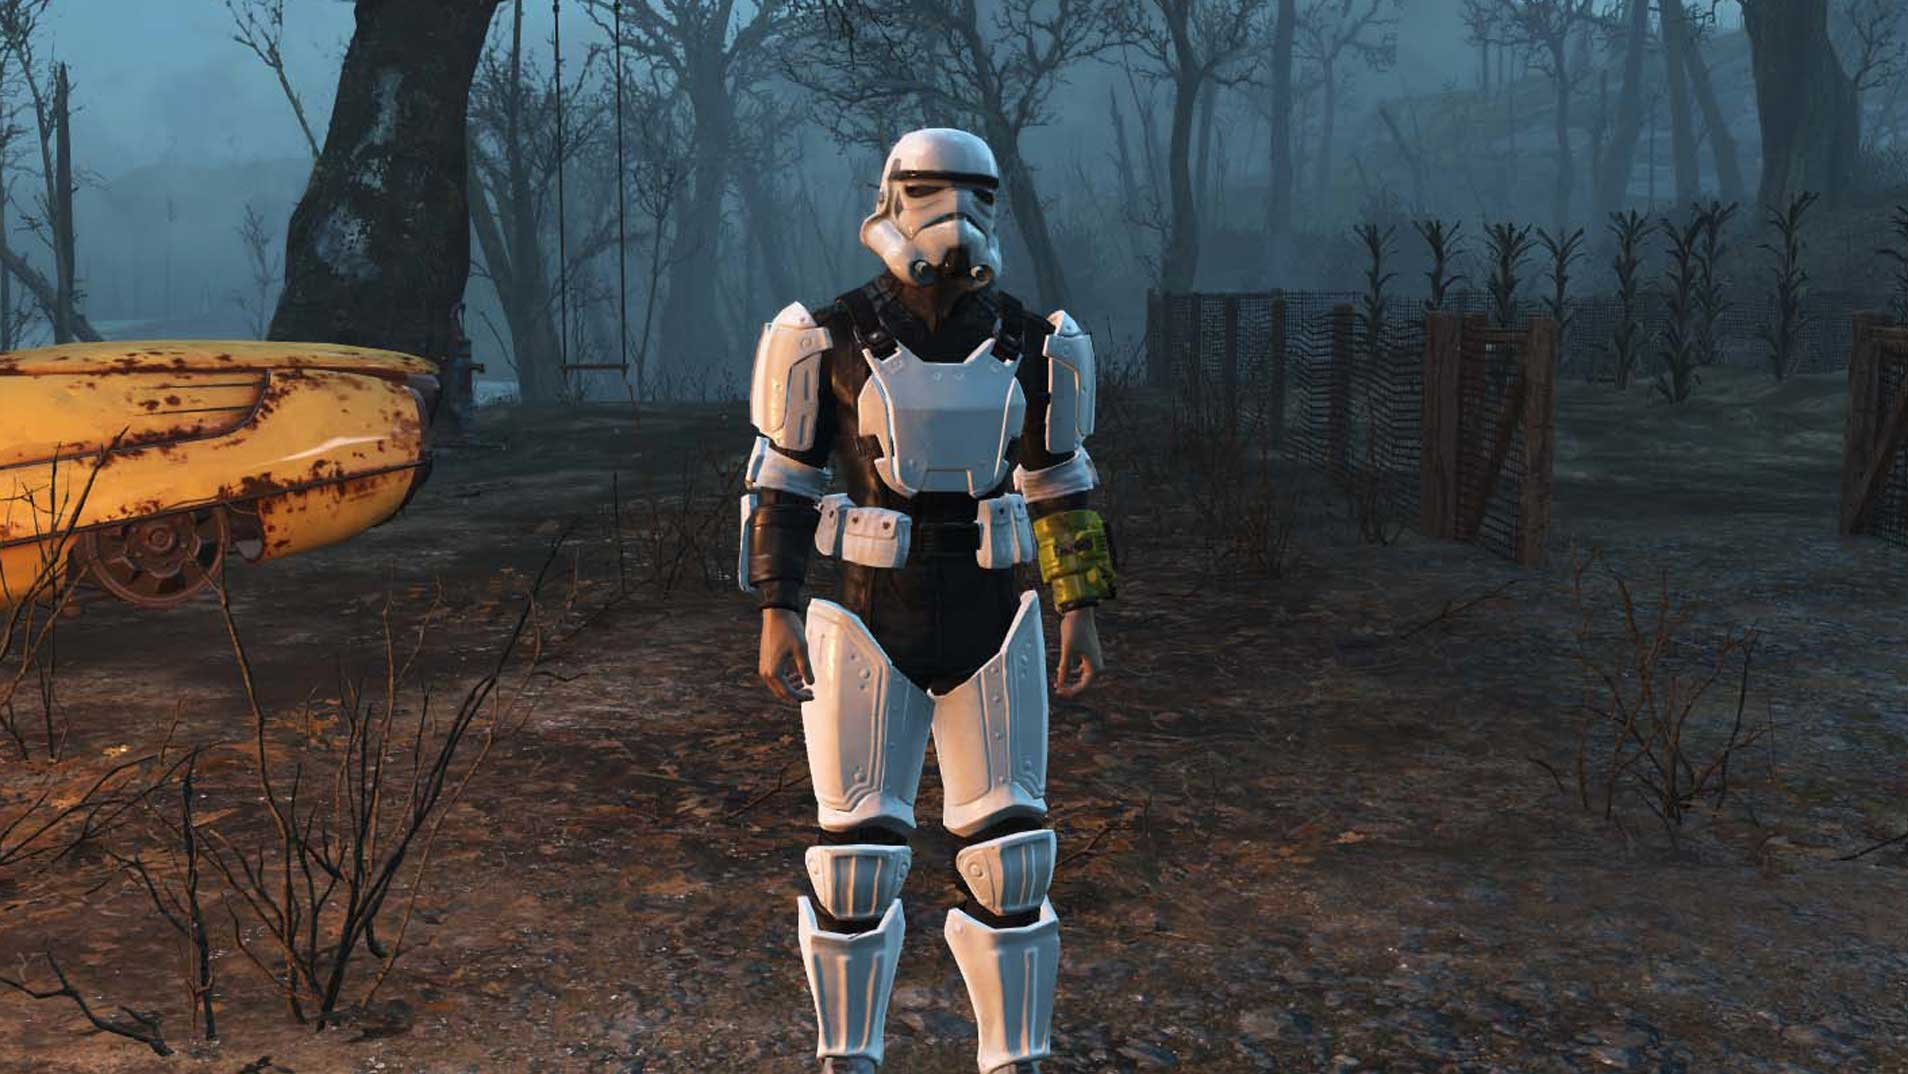 fallout 4 mods star wars stormtrooper Bethesda Game Mods No Longer Coming To PS4